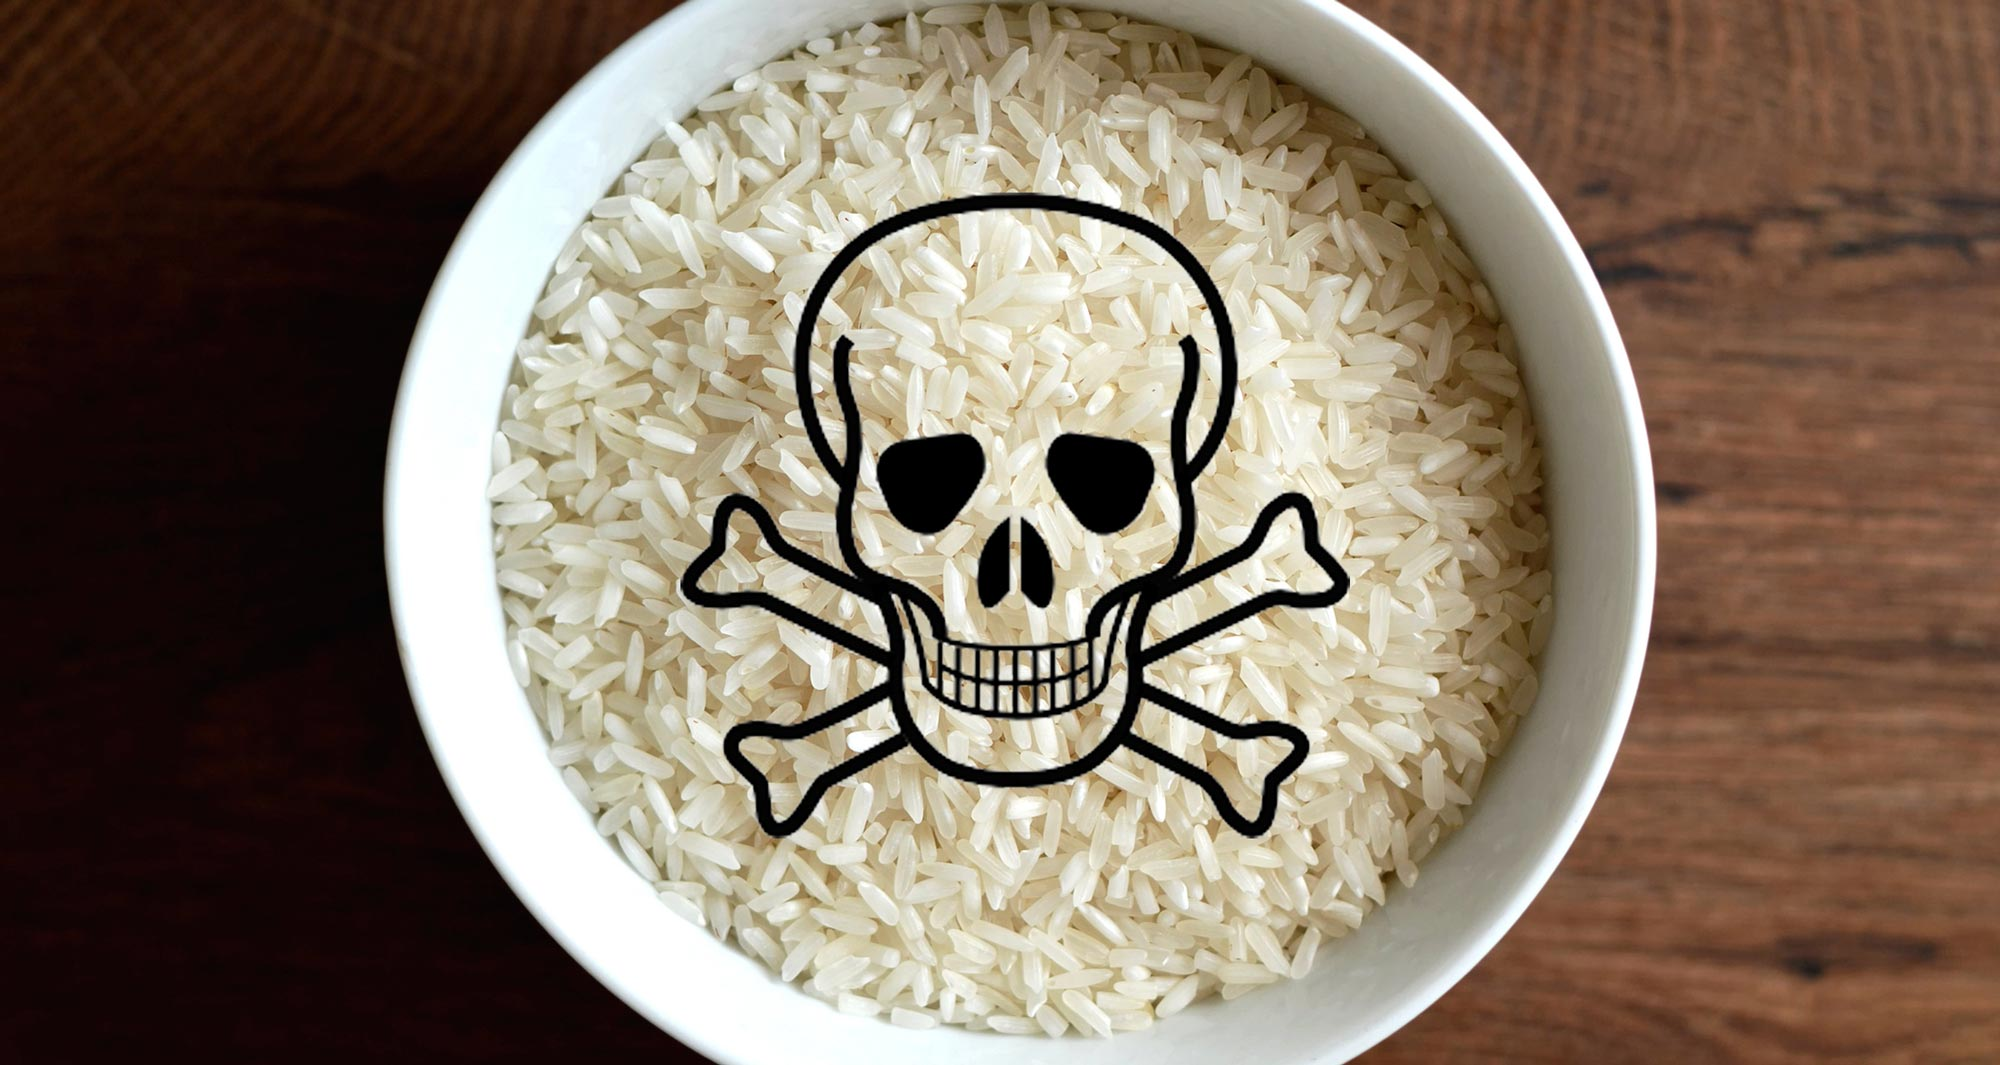 Arsenic In Rice: How Concerned Should You Be?